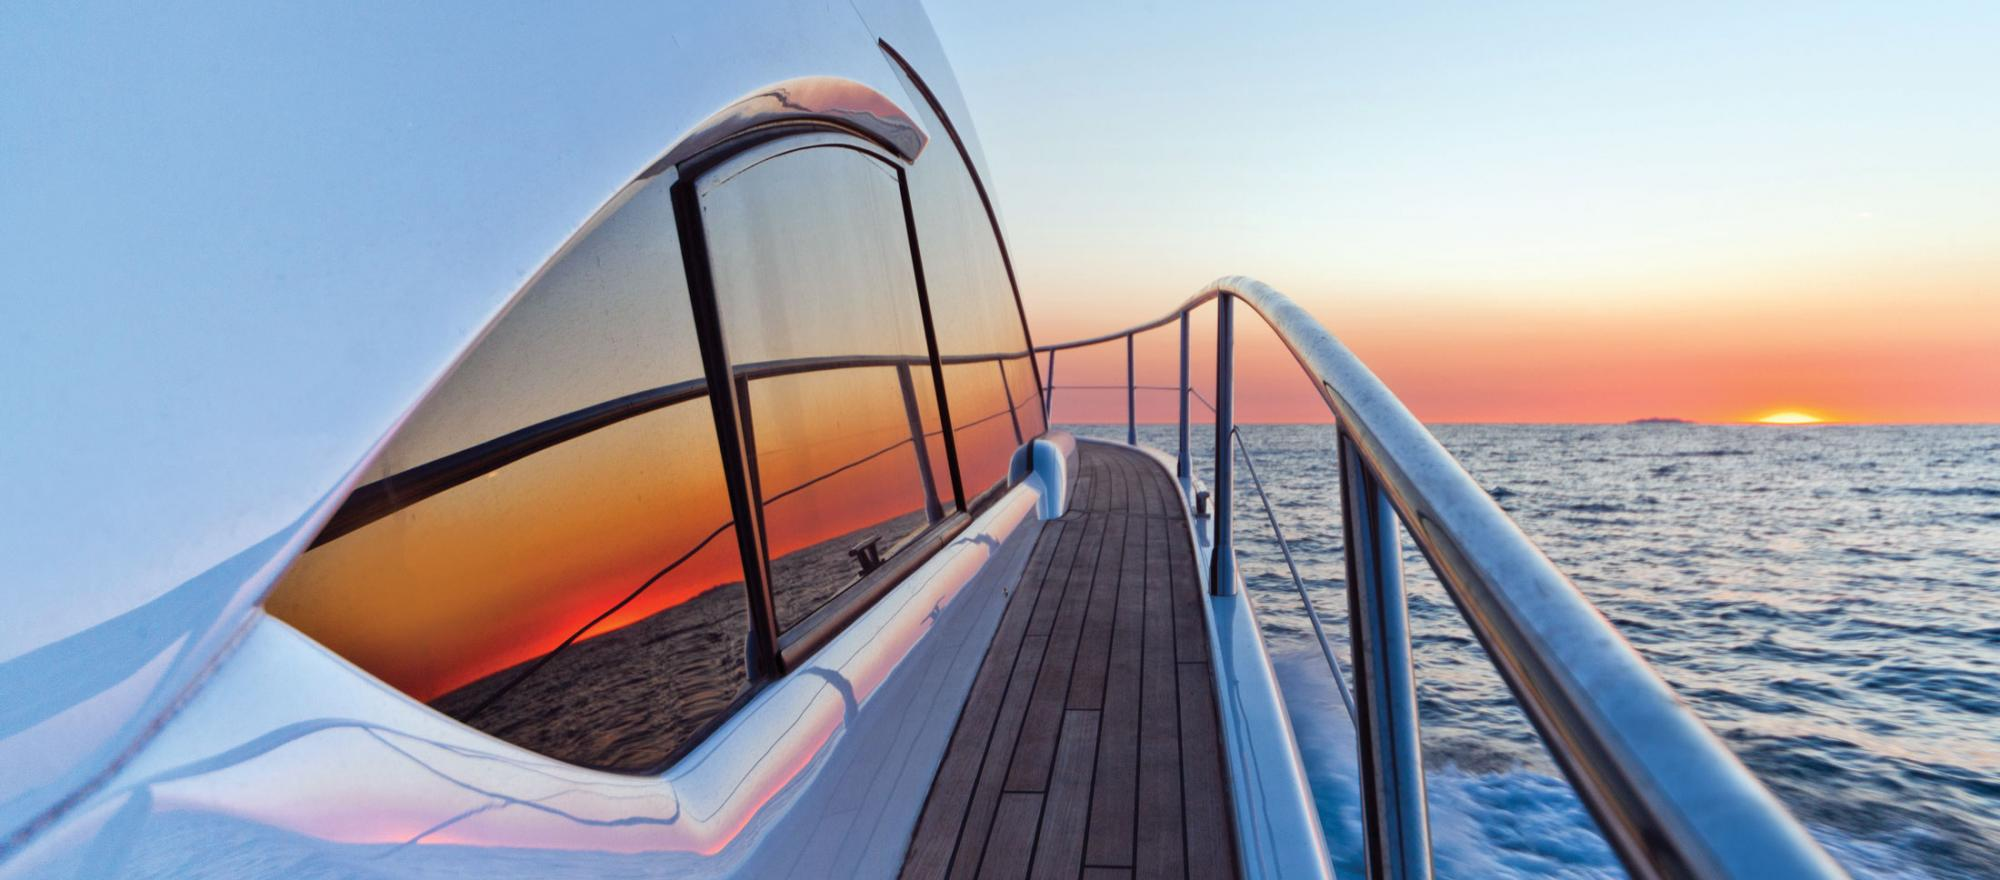 Sunset view from the deck of a yacht.